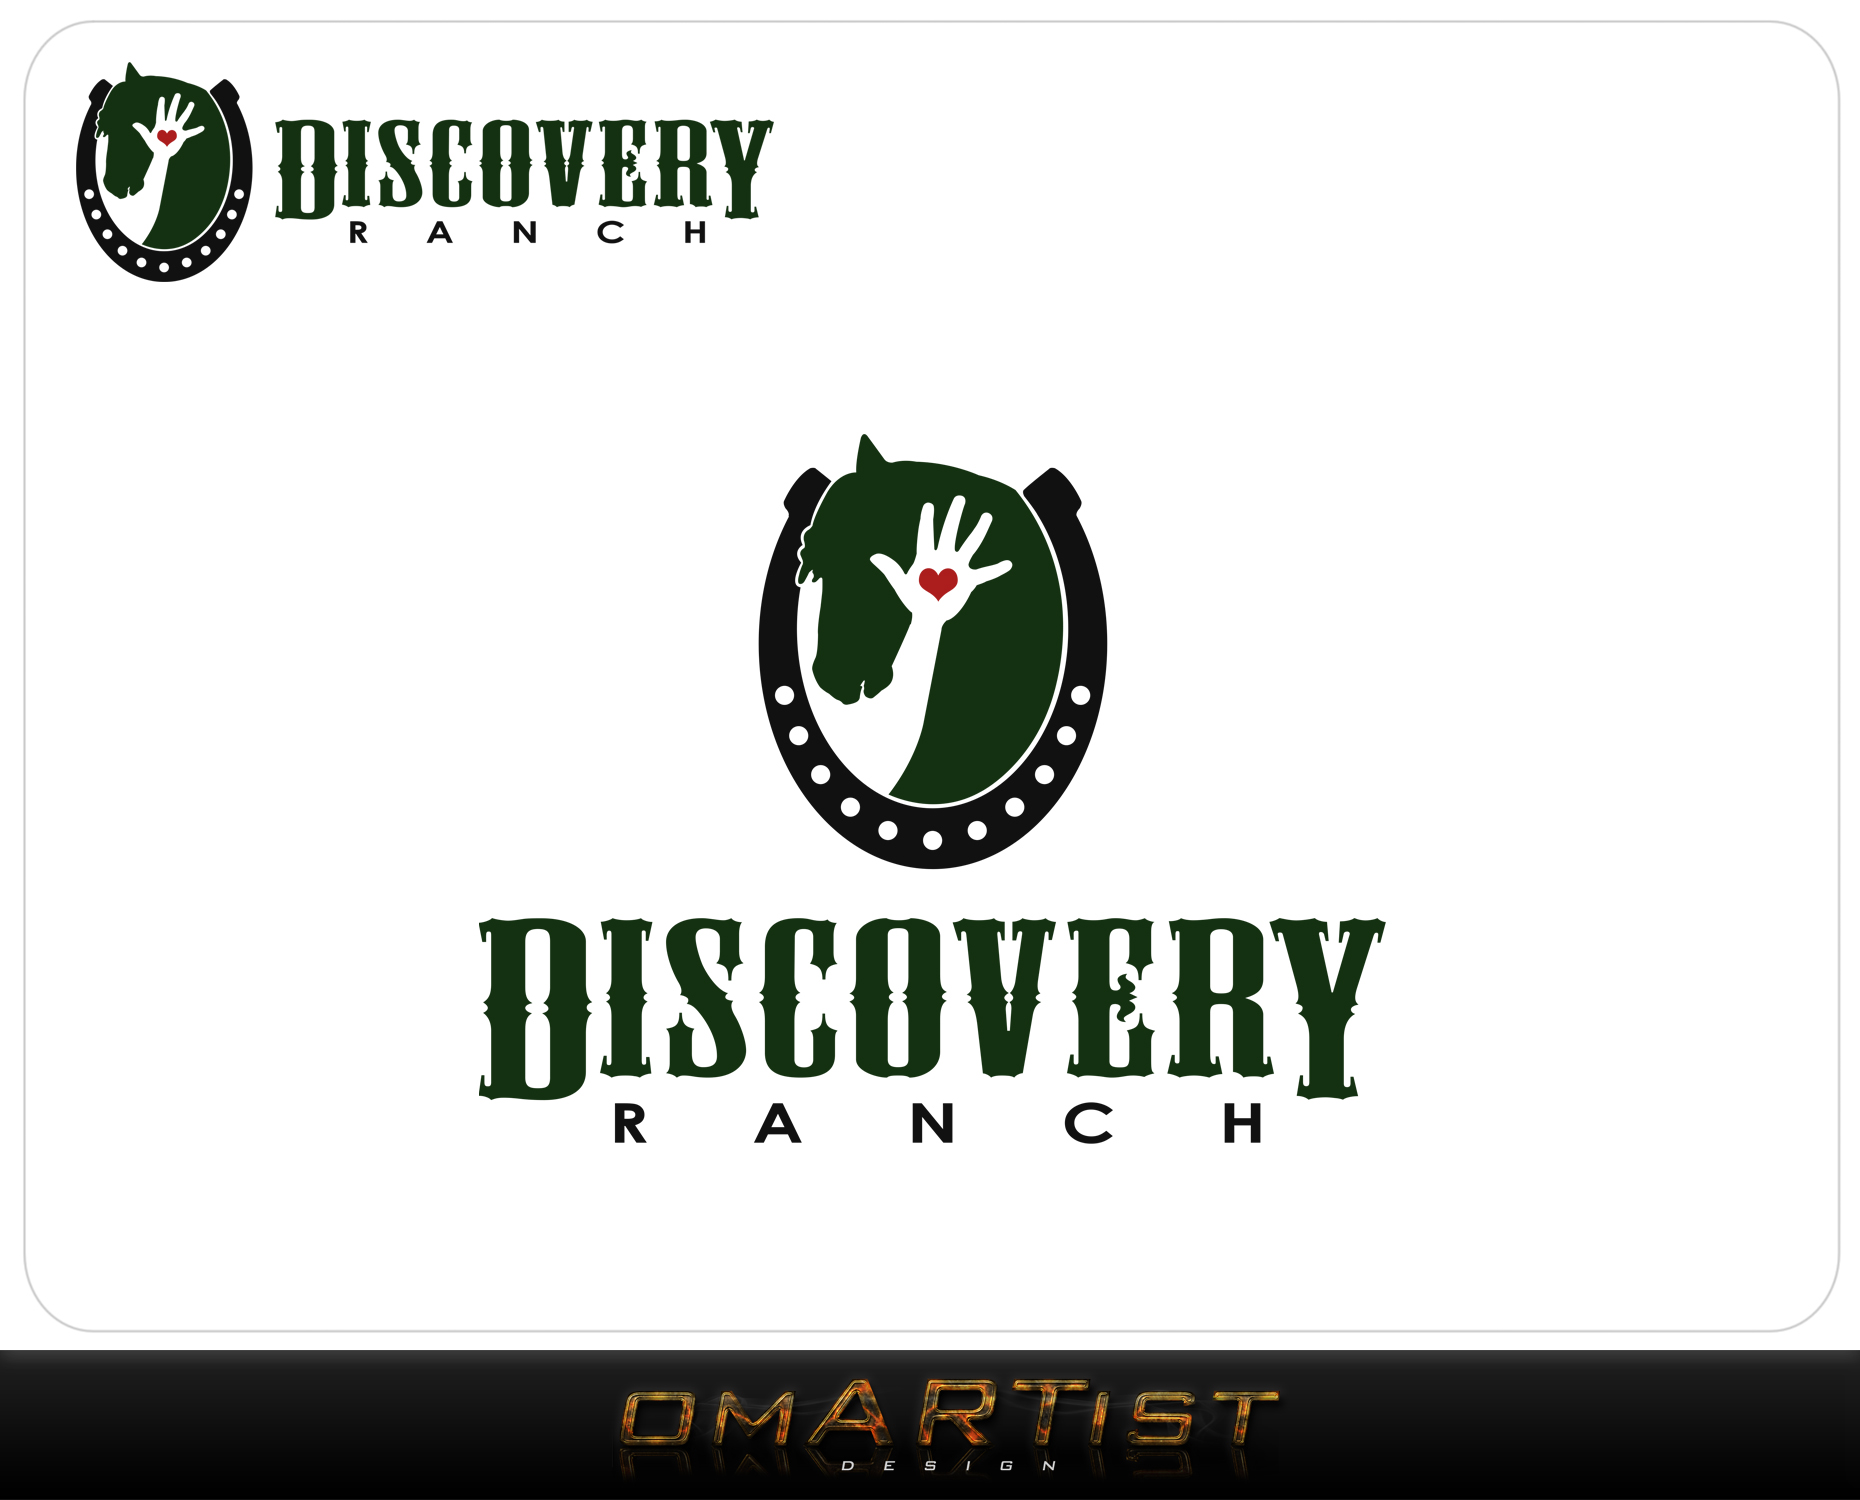 Logo Design by omARTist - Entry No. 79 in the Logo Design Contest Creative Logo Design for Discovery Ranch.